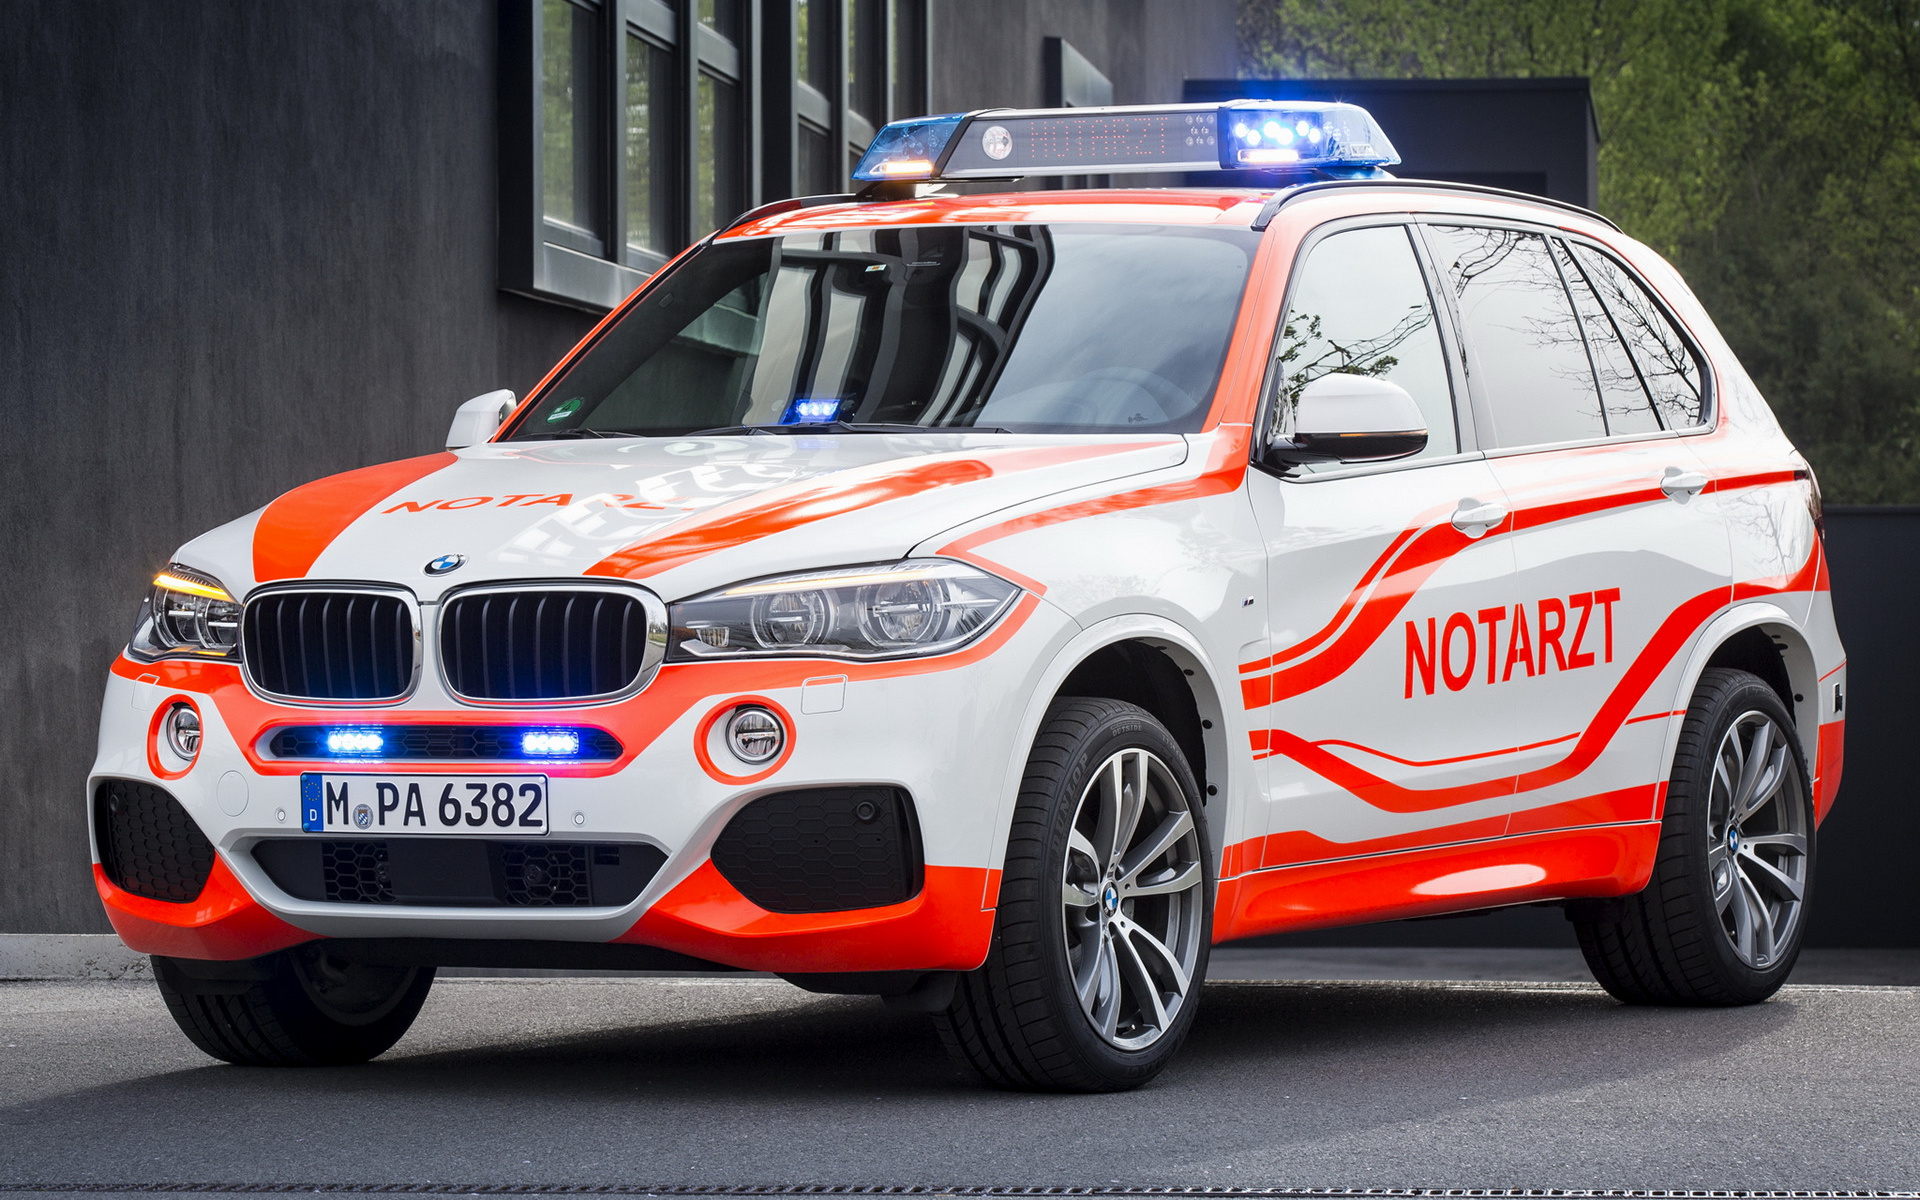 Bmw X5 M Sport Notarzt 2014 Wallpapers And Hd Images